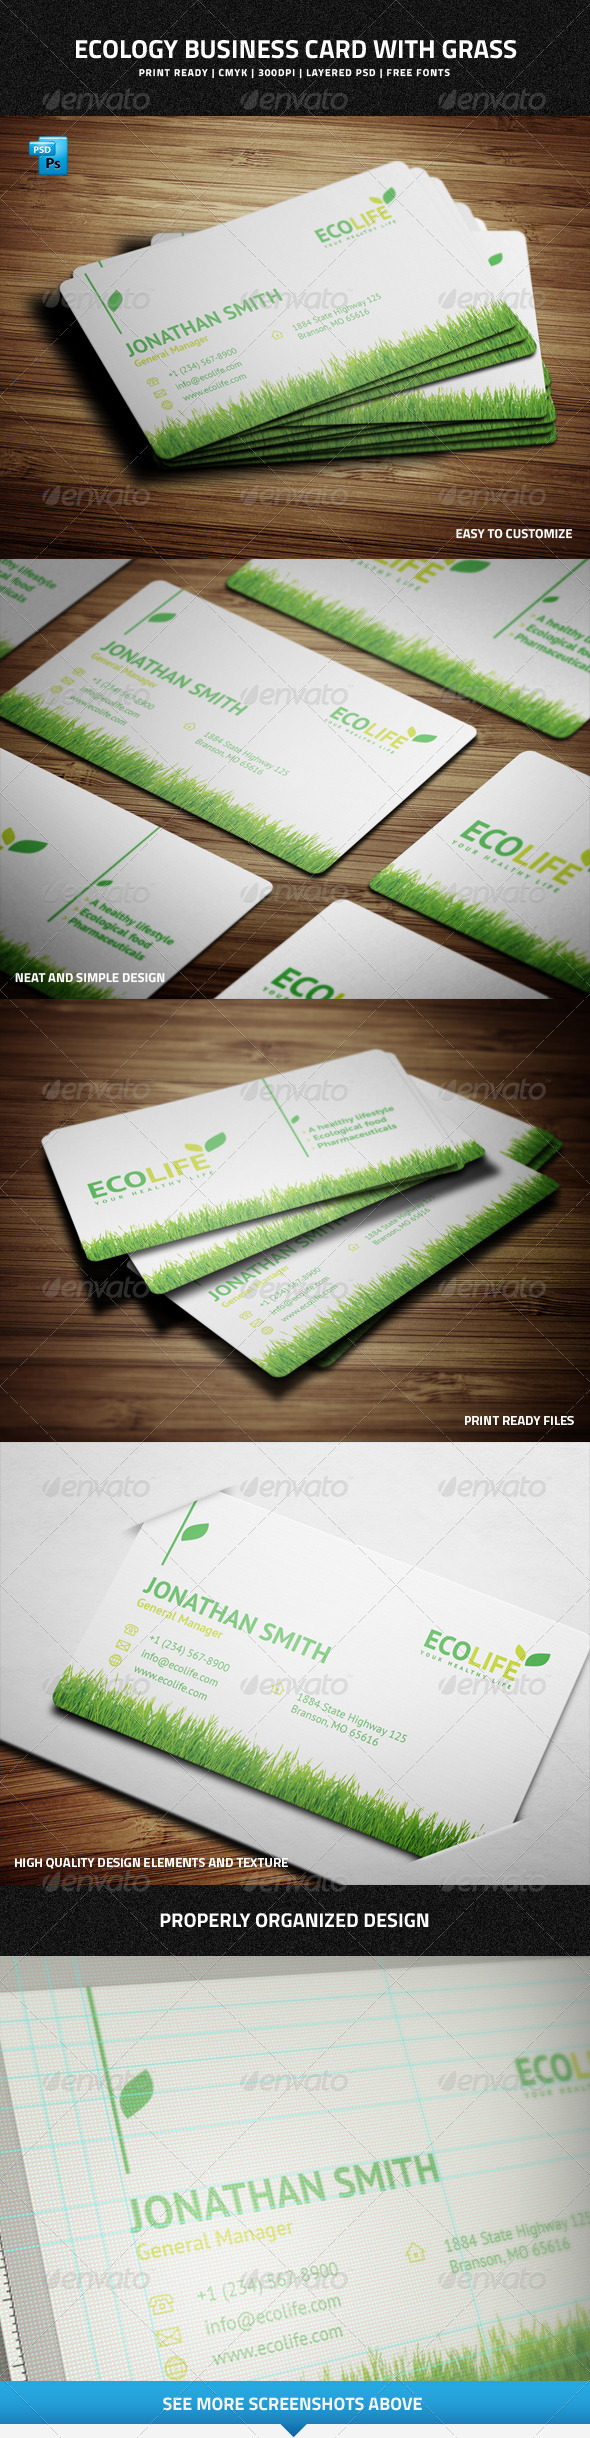 Ecology Business Card with Grass - 31 - Corporate Business Cards